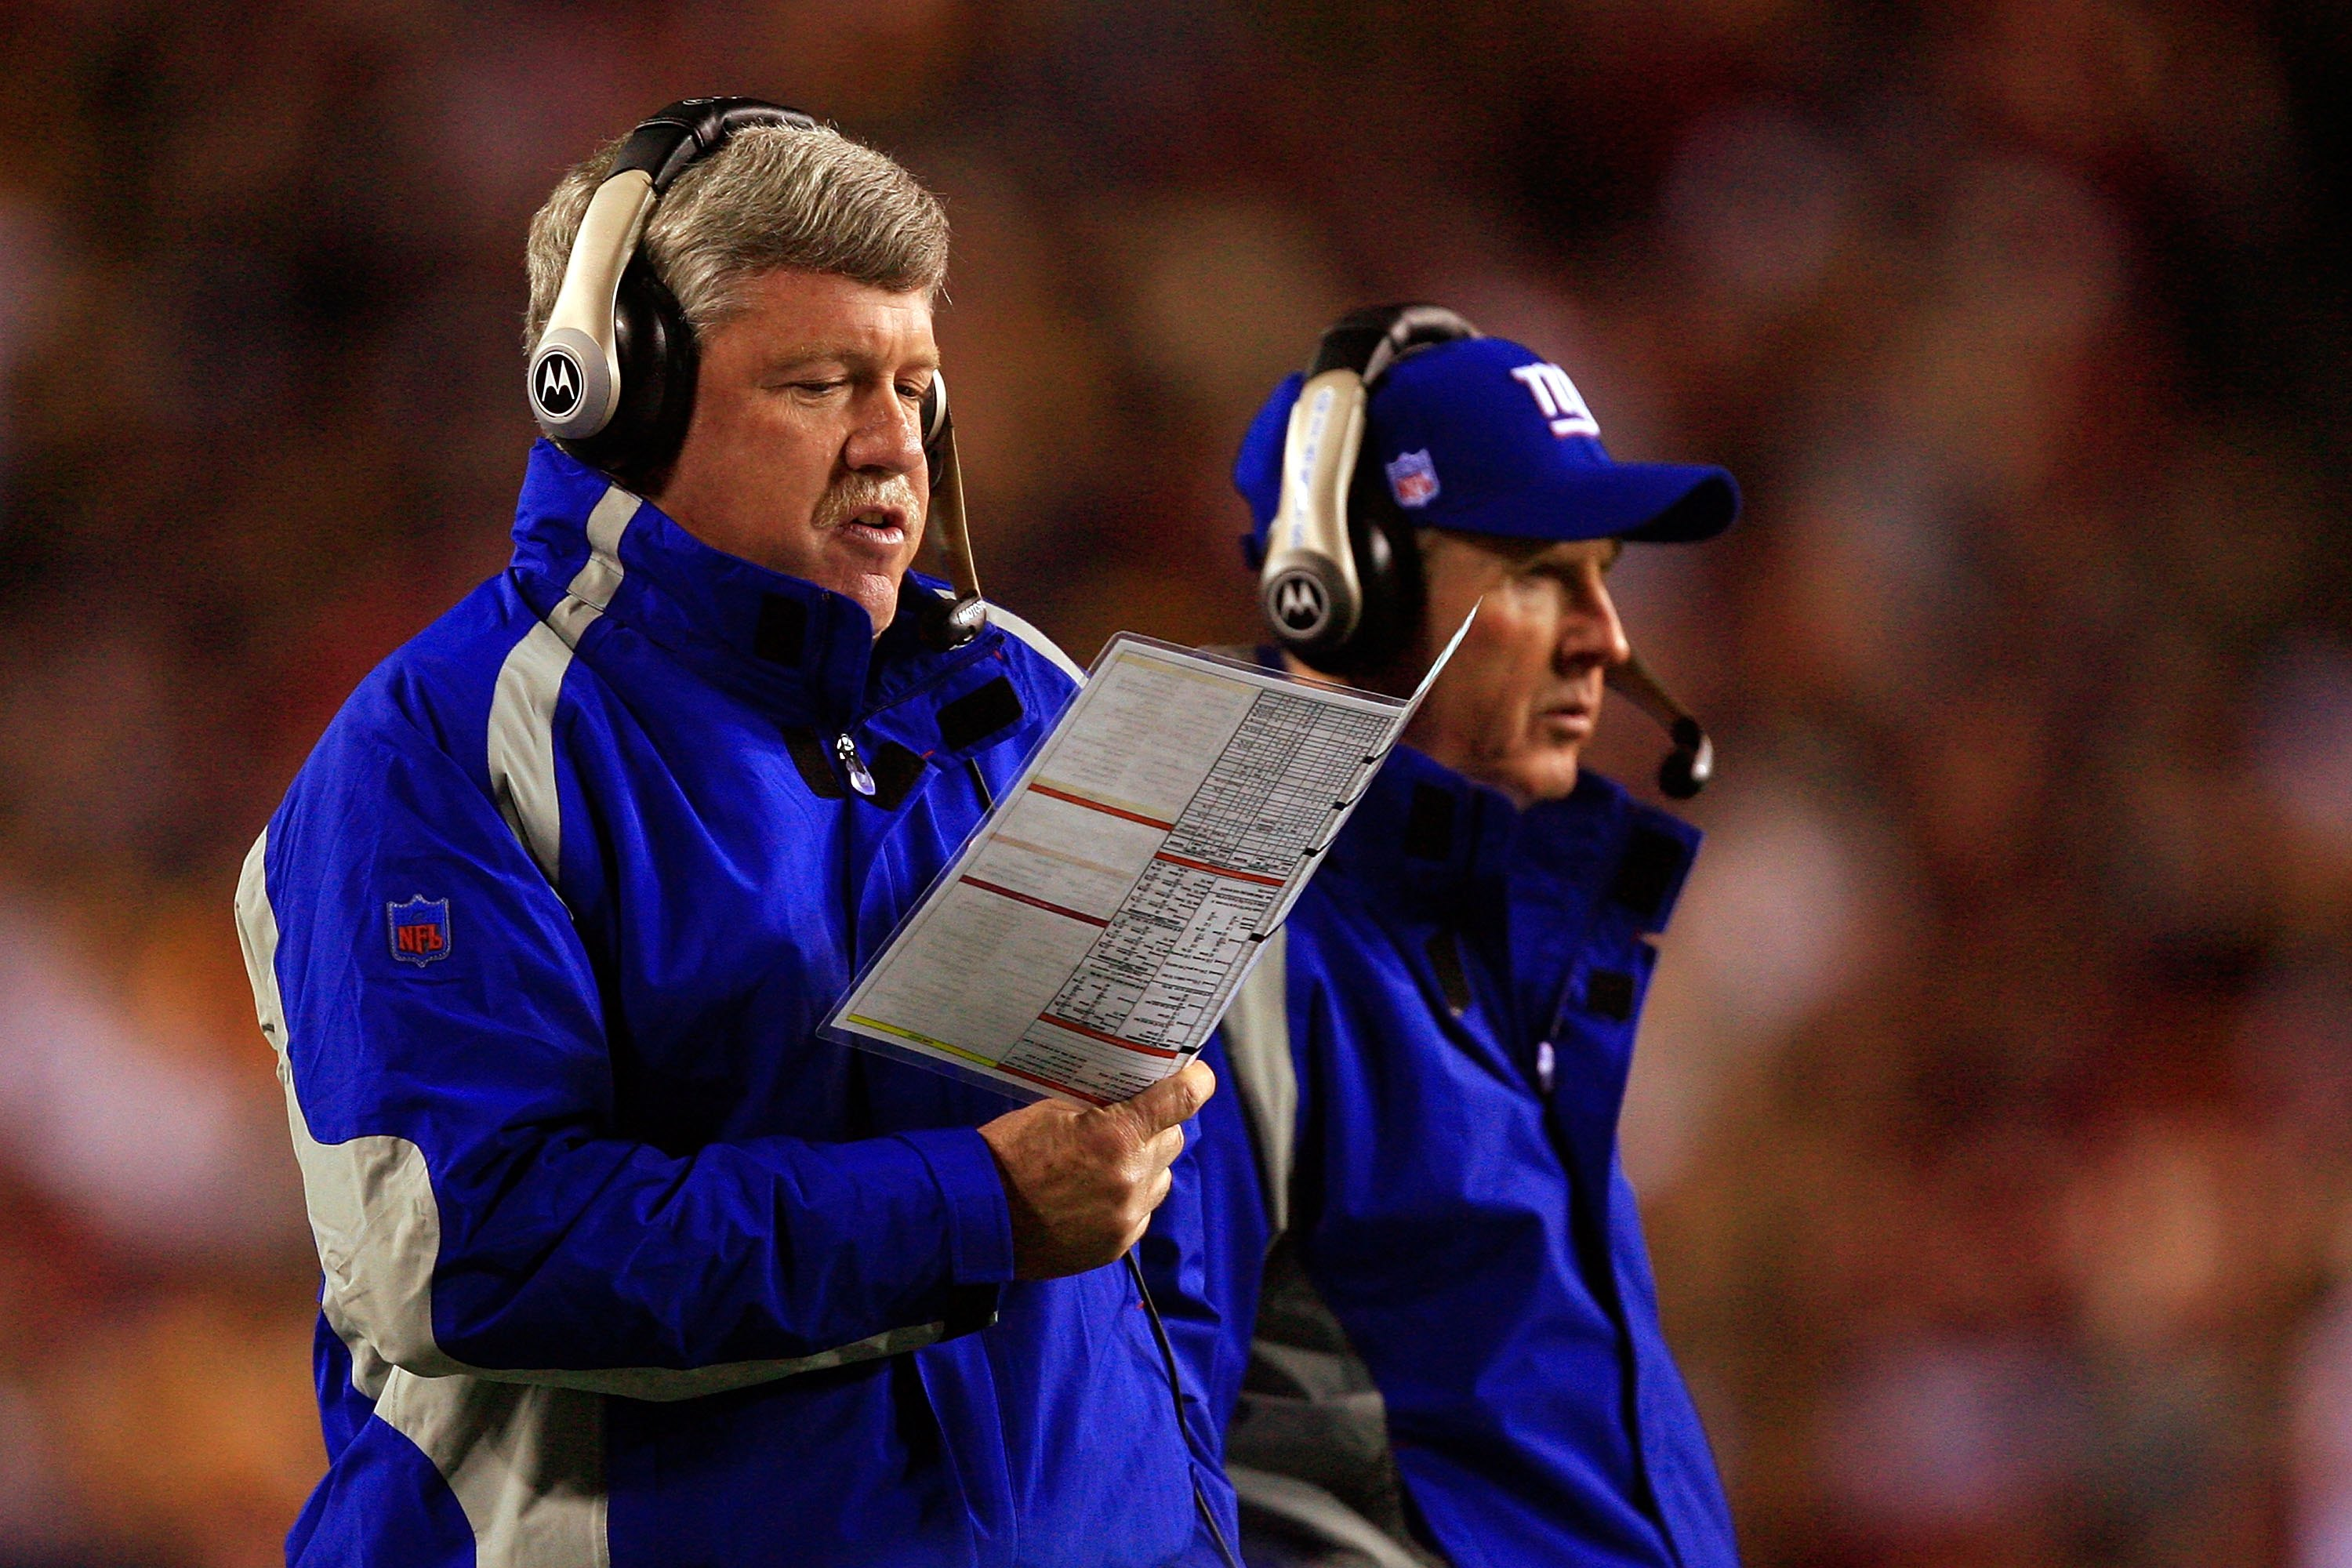 LANDOVER, MD - DECEMBER 30:  Quarterbacks coach Kevin Gilbride (L) and head coach Tom Coughlin of the New York Giants look on from the sidelines against the Washington Redskins at FedEx Field on December 30, 2006 in Landover, Maryland.  (Photo by Jamie Sq